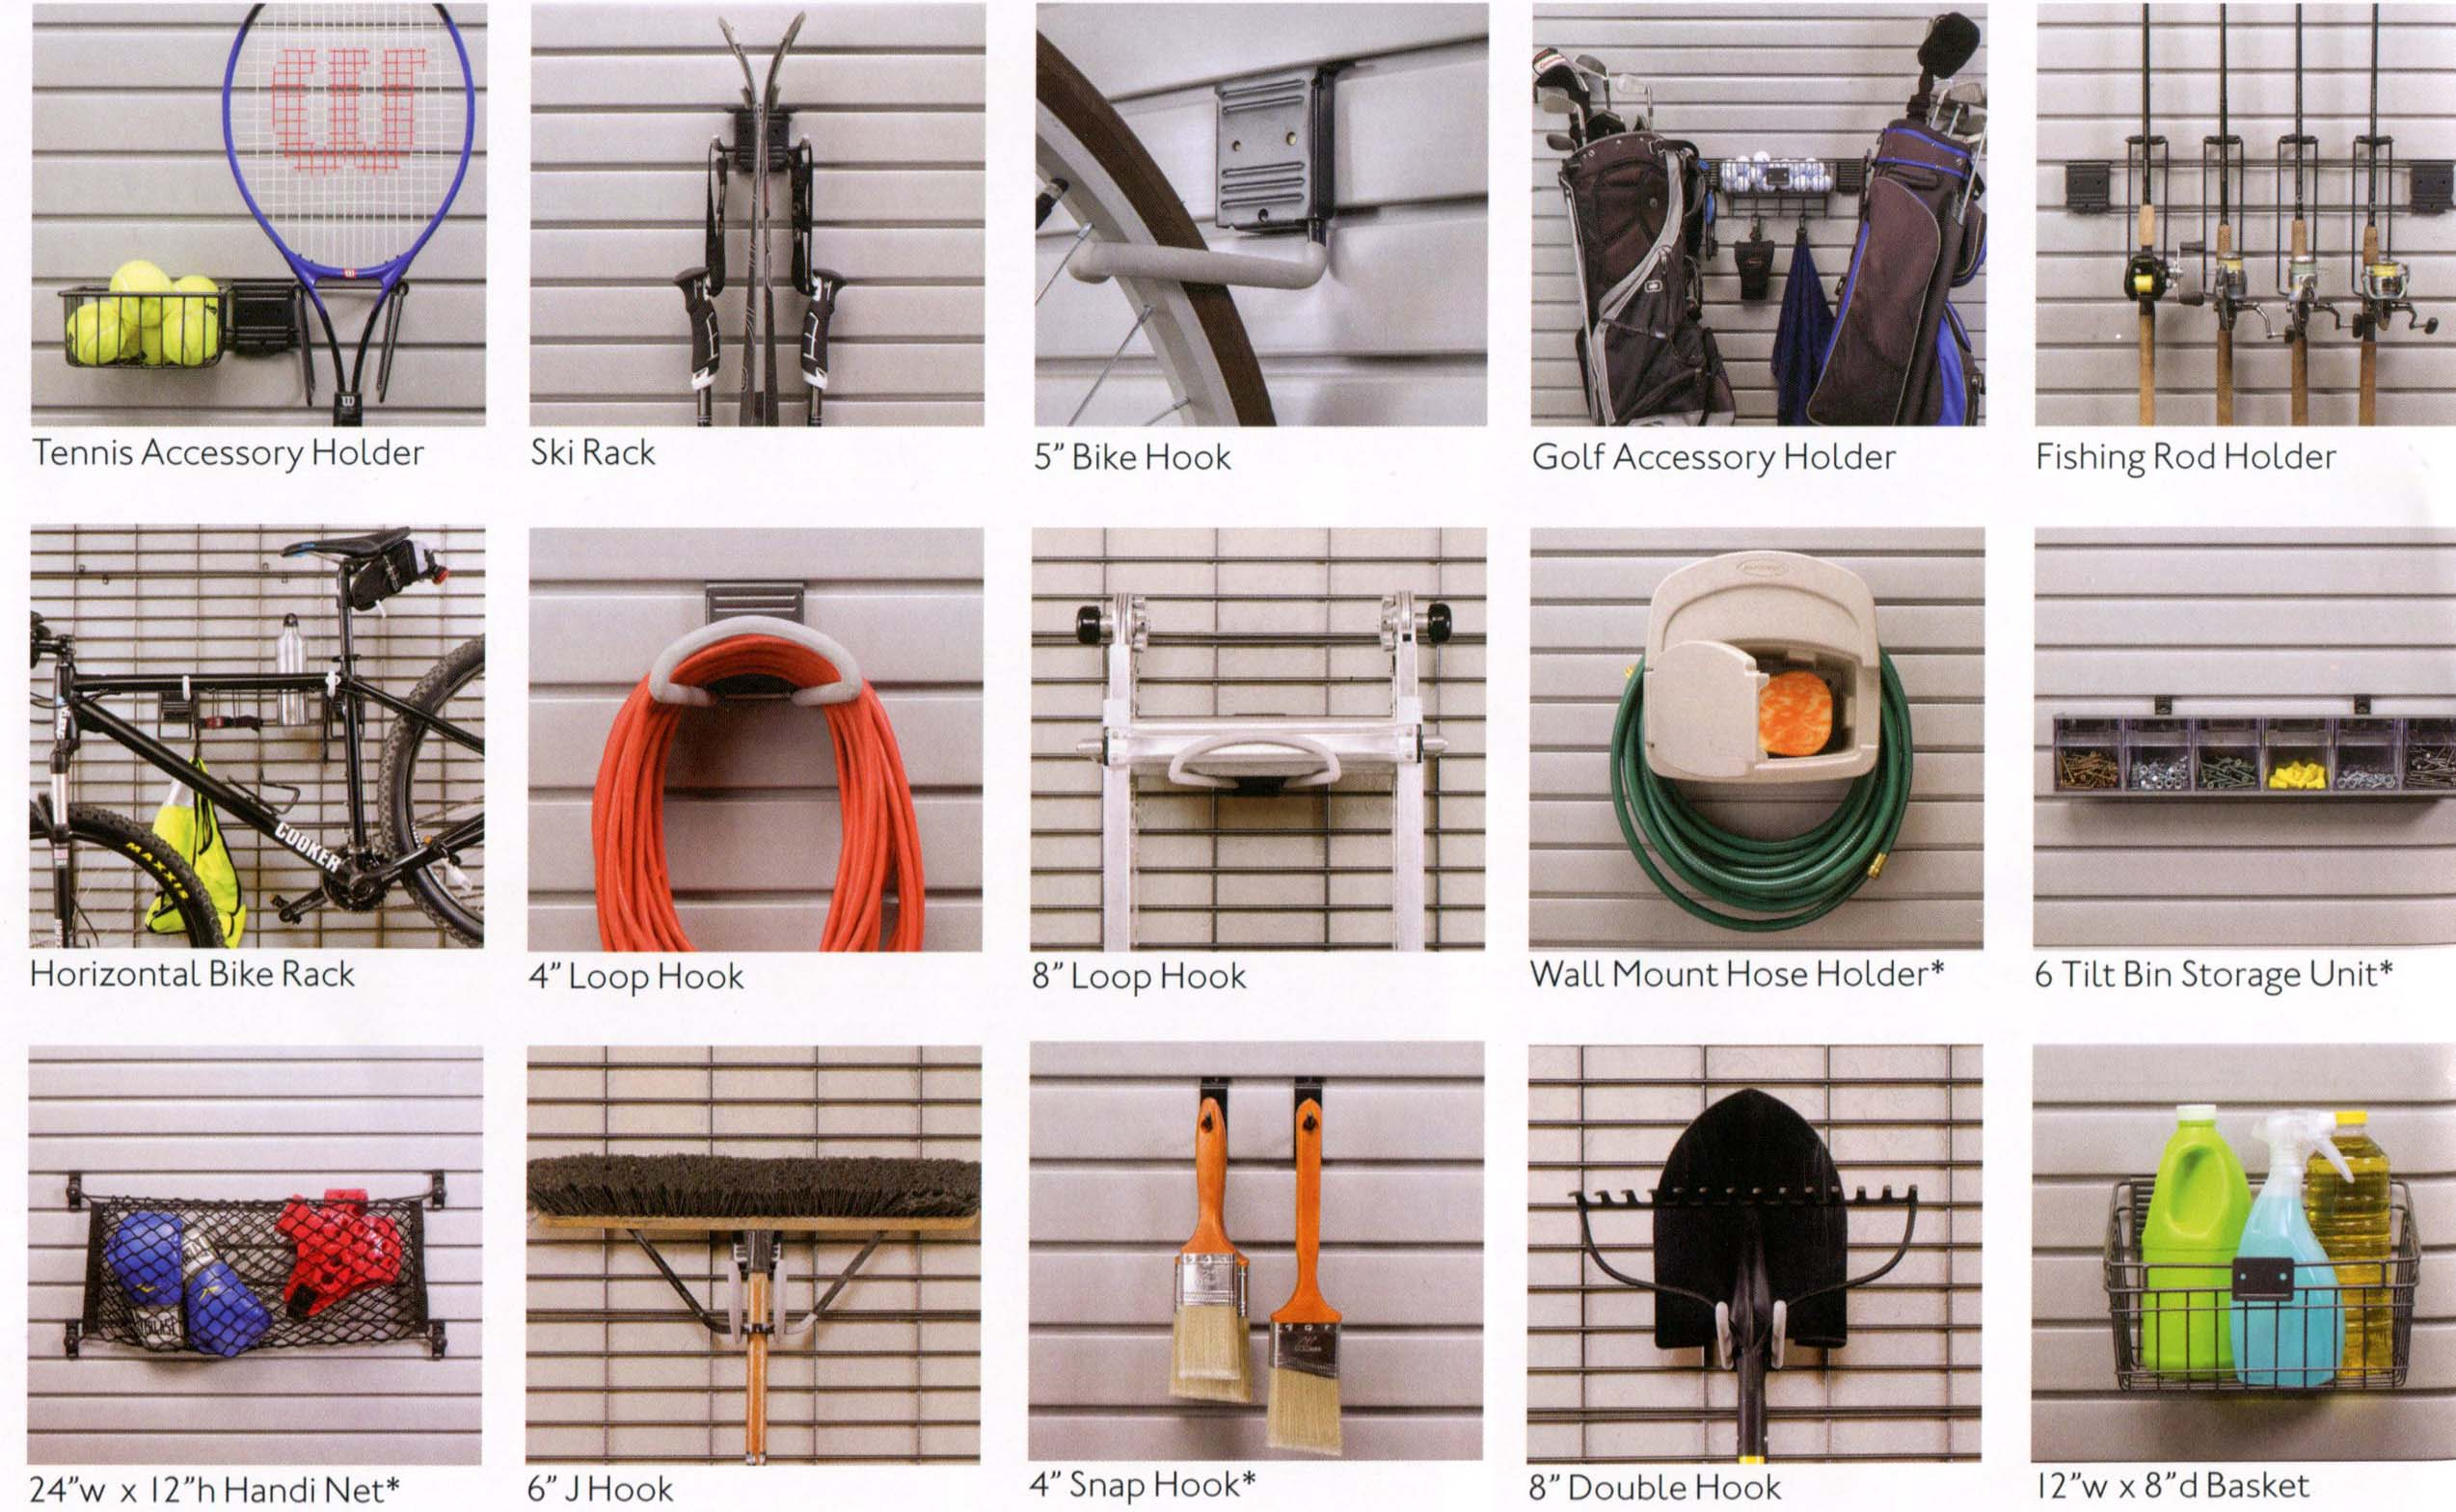 Tennis Accessory Holder - Ski Rack - Bike Hook - Bike Accessory Holder - Fishing Rod Holder - Horizontal Bike Rack - Loop Hook - Wall Mount Hose Holder - Tilt Bin Storage Unit - Handy Net - J Hook - Snap Hook - Double Hook - Basket